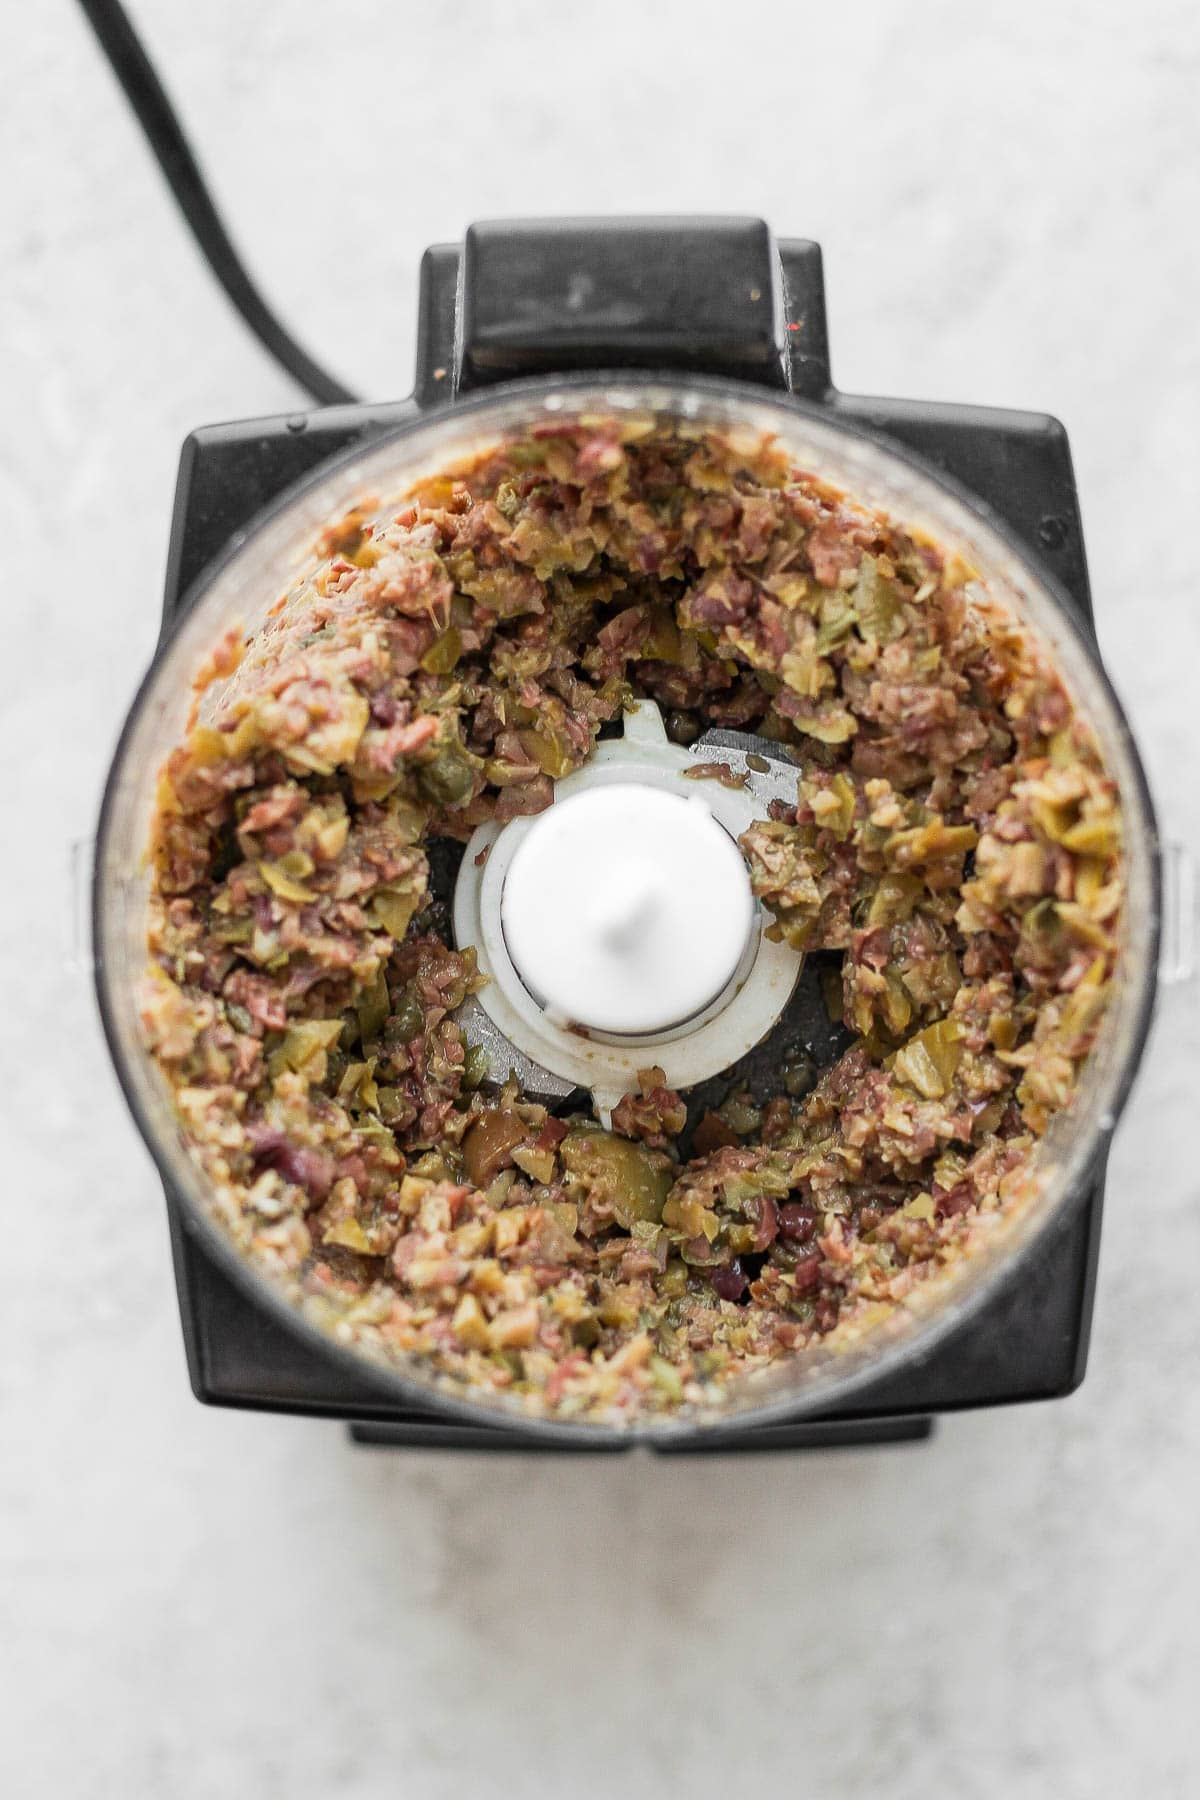 Top shot of a food processor with olive tapenade inside.